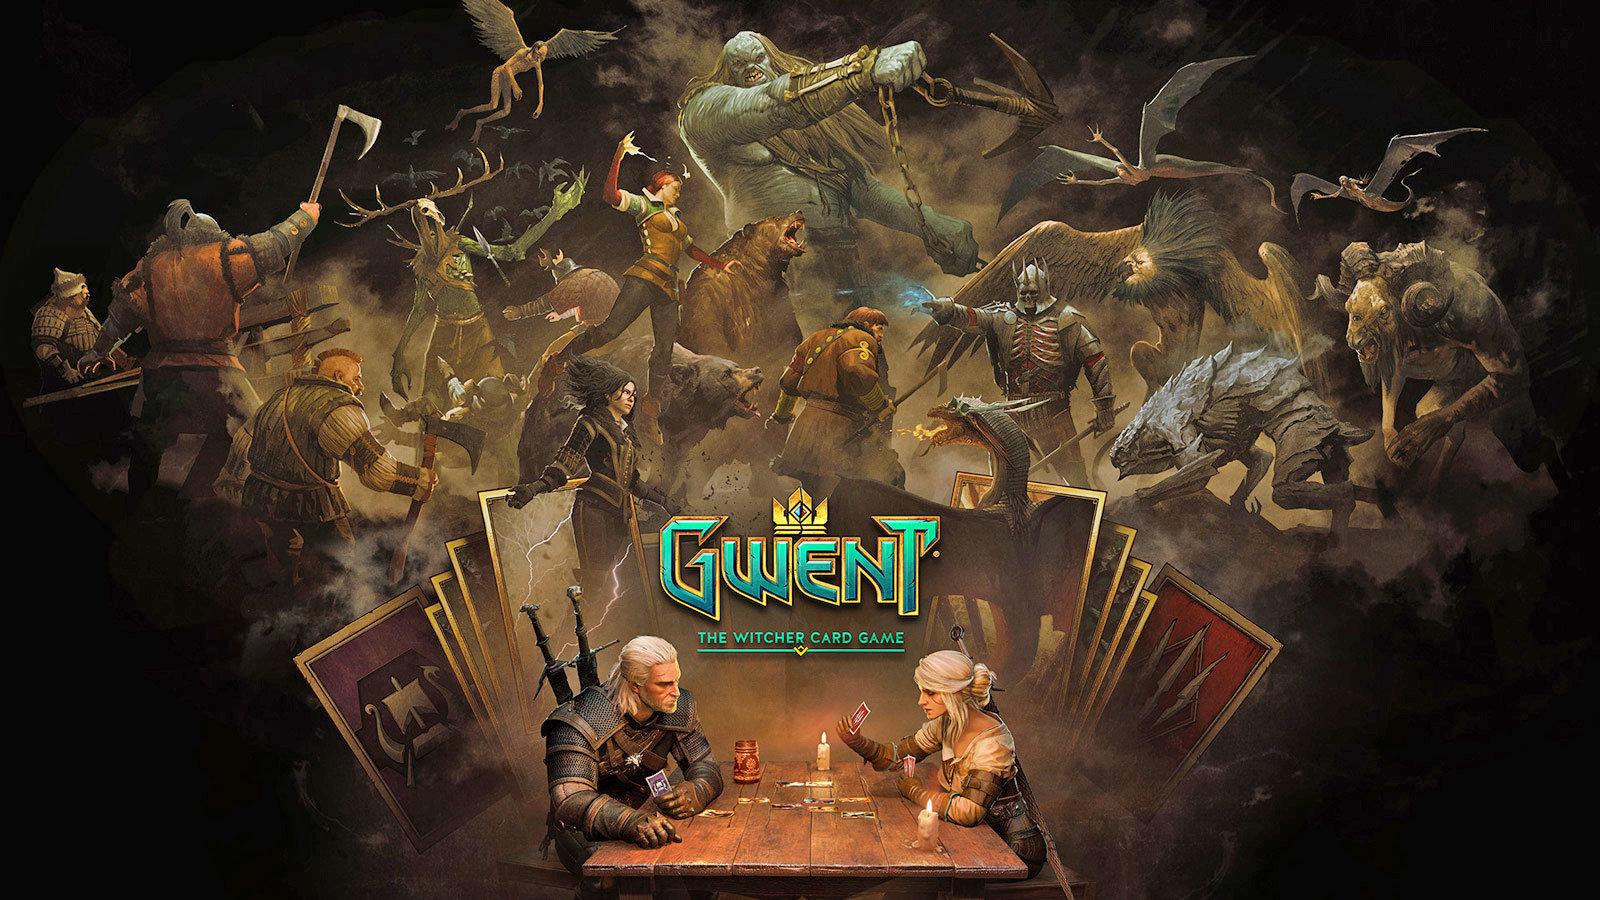 Gwent: The Witcher Card Game Is Coming To iOS This October, Pre-Orders Have Already Begun